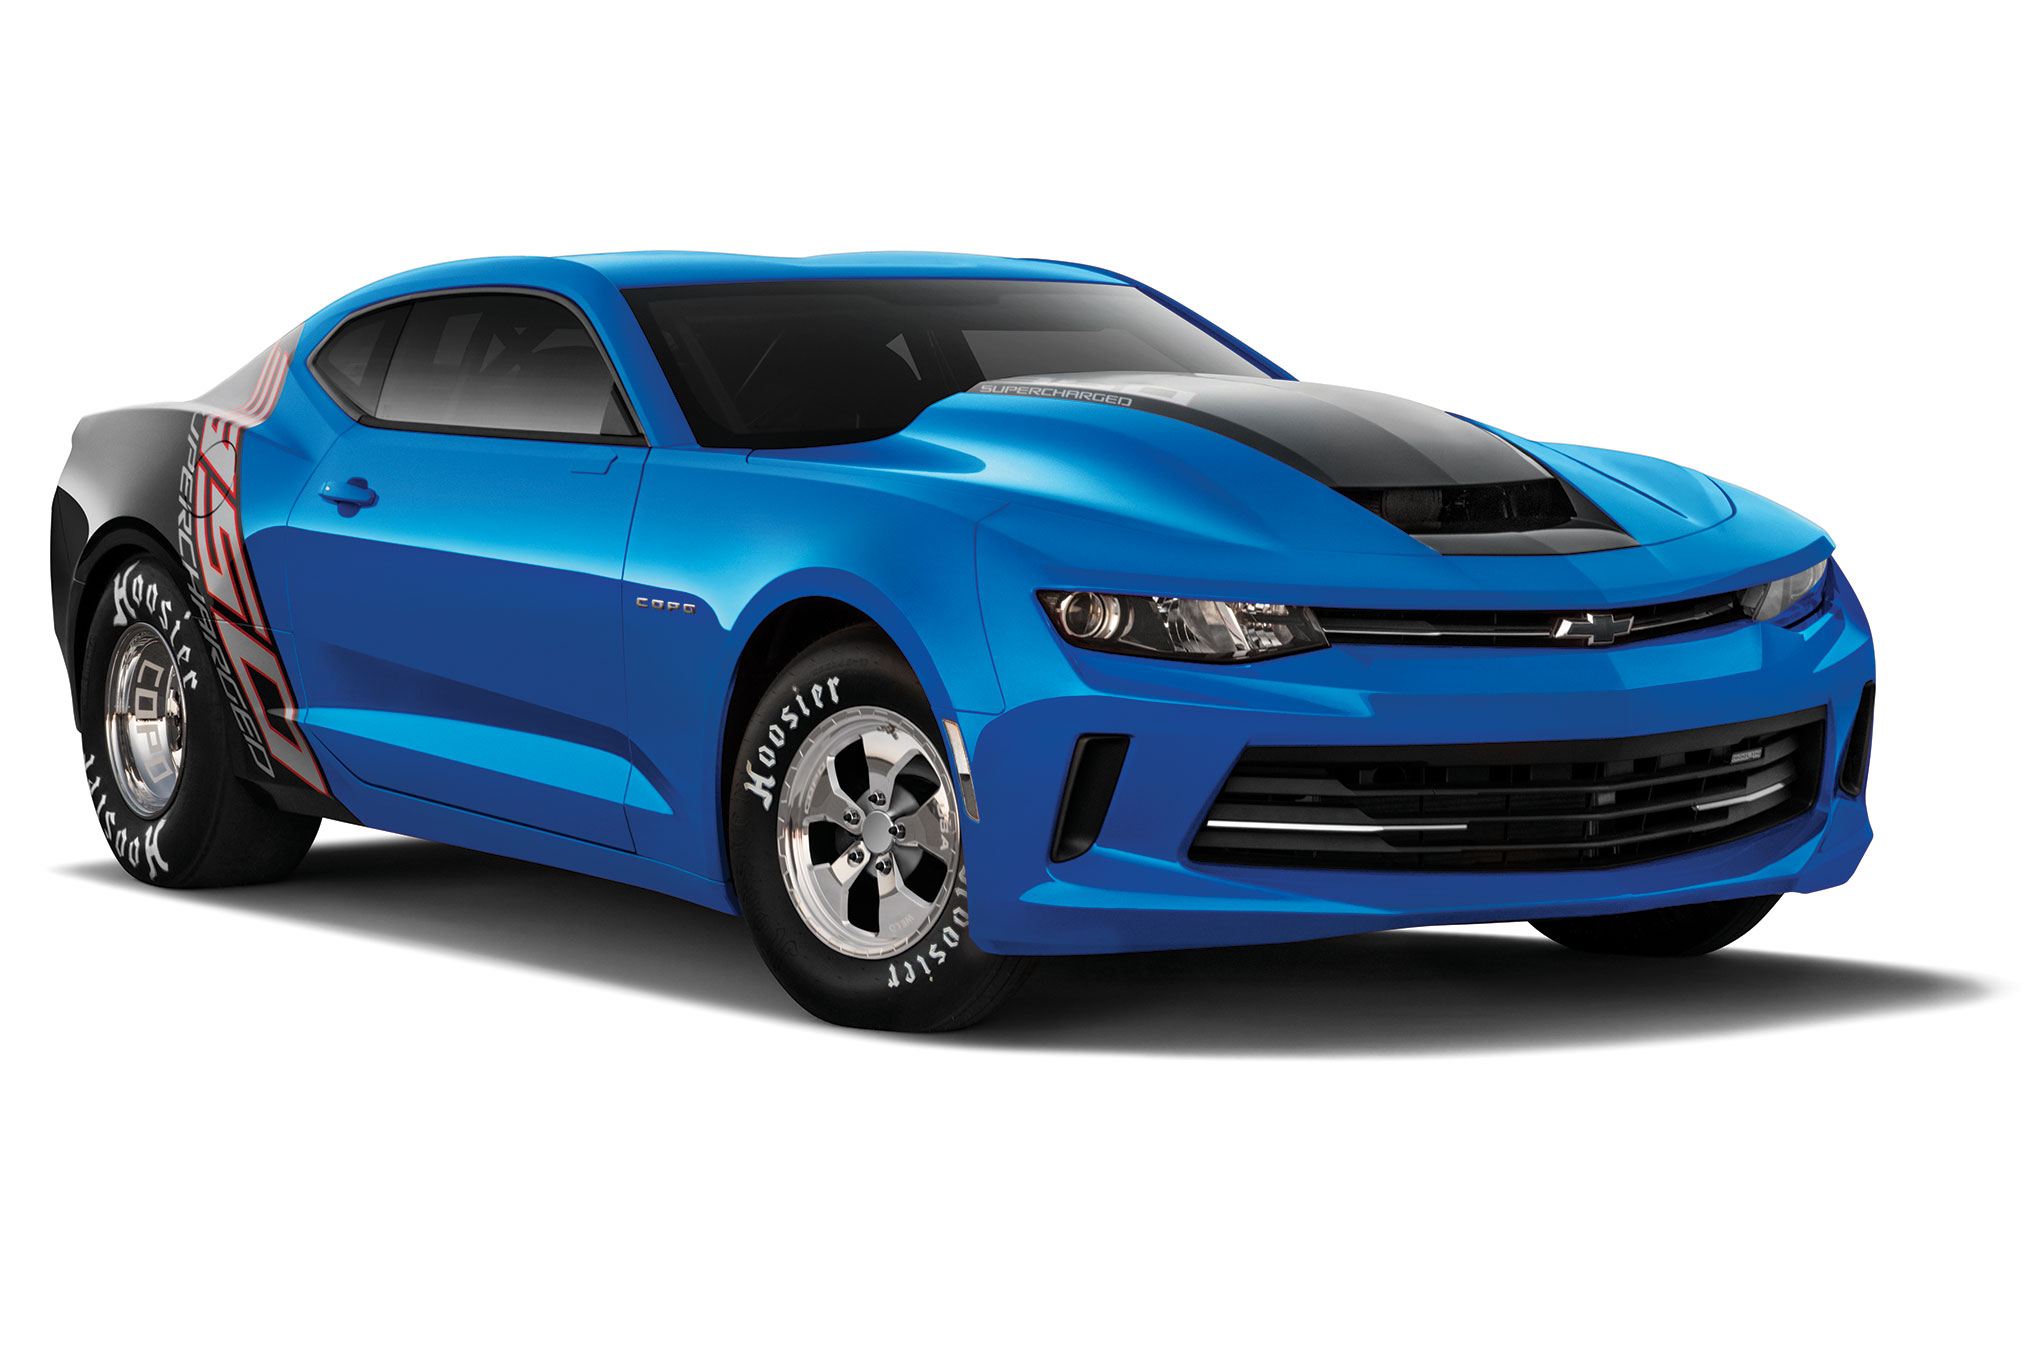 chevrolet camaro full hd wallpaper and background image | 2040x1360